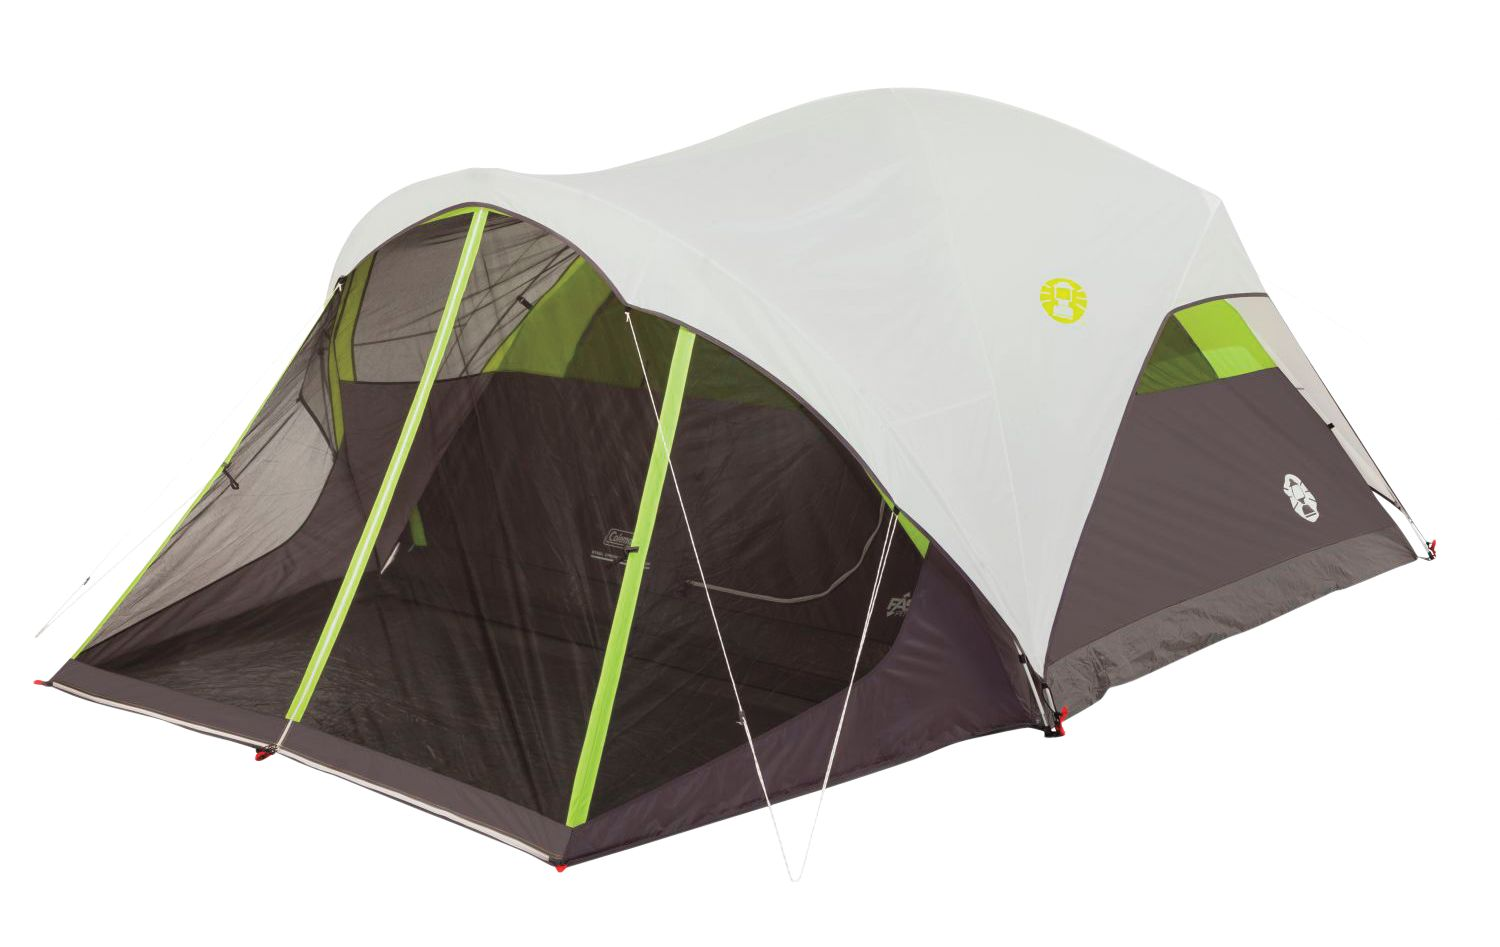 Product Image · Coleman Steel Creek Fast Pitch Screen Room Tent  sc 1 st  DICKu0027S Sporting Goods & 6-Person Tents | DICKu0027s Sporting Goods